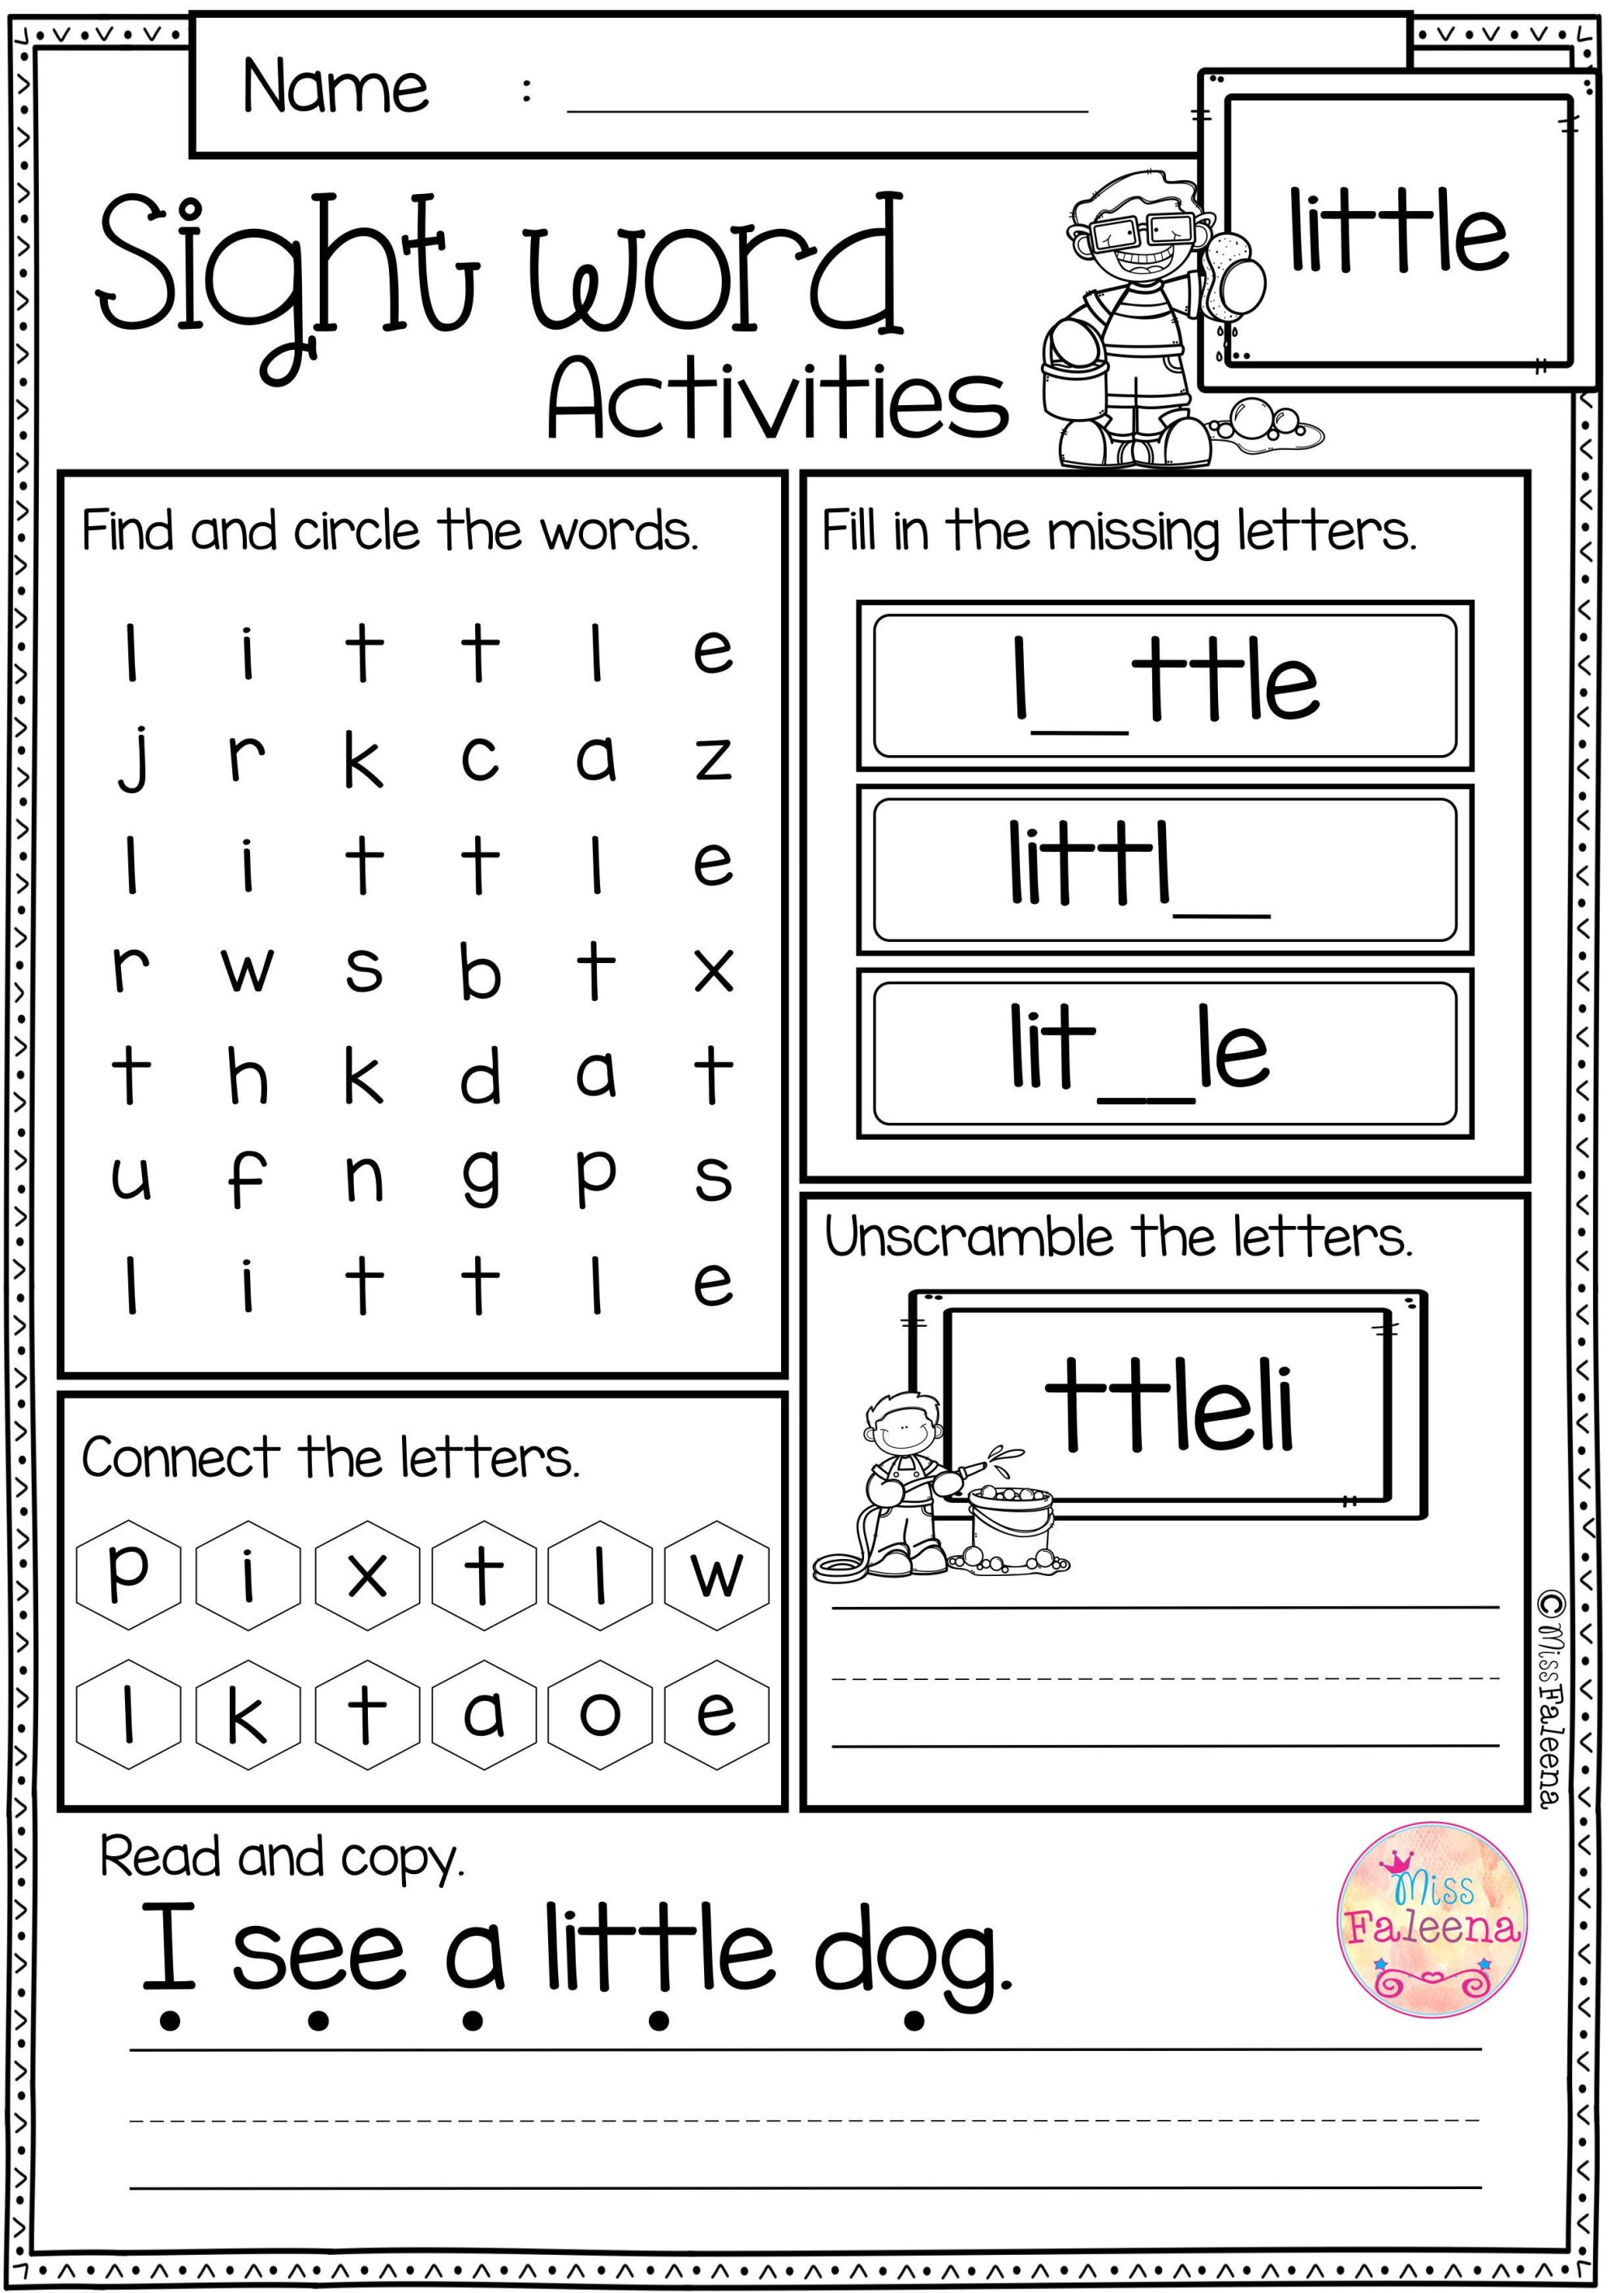 hight resolution of Sight Word Activities (pre-primer)   Rt   Sight Word Worksheets on Best  Worksheets Collection 2052